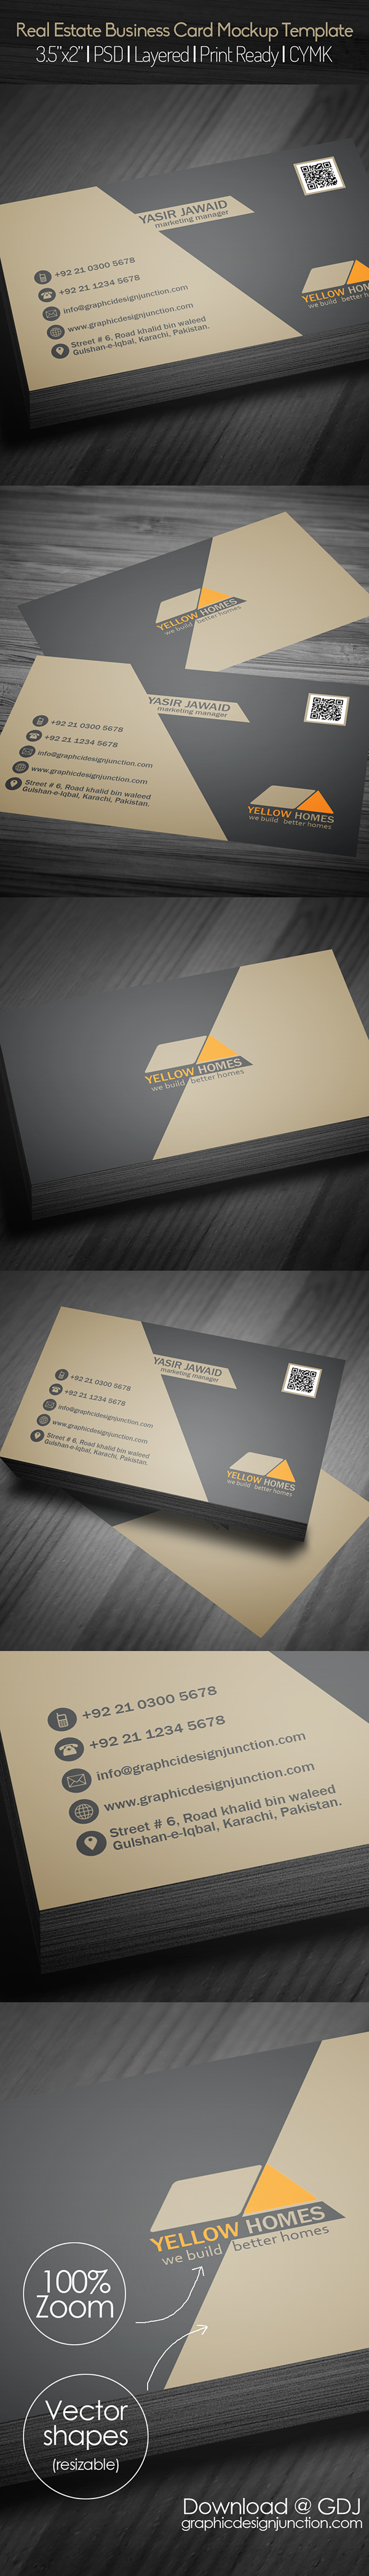 Real Estate Business Card PSD Template (Freebie)